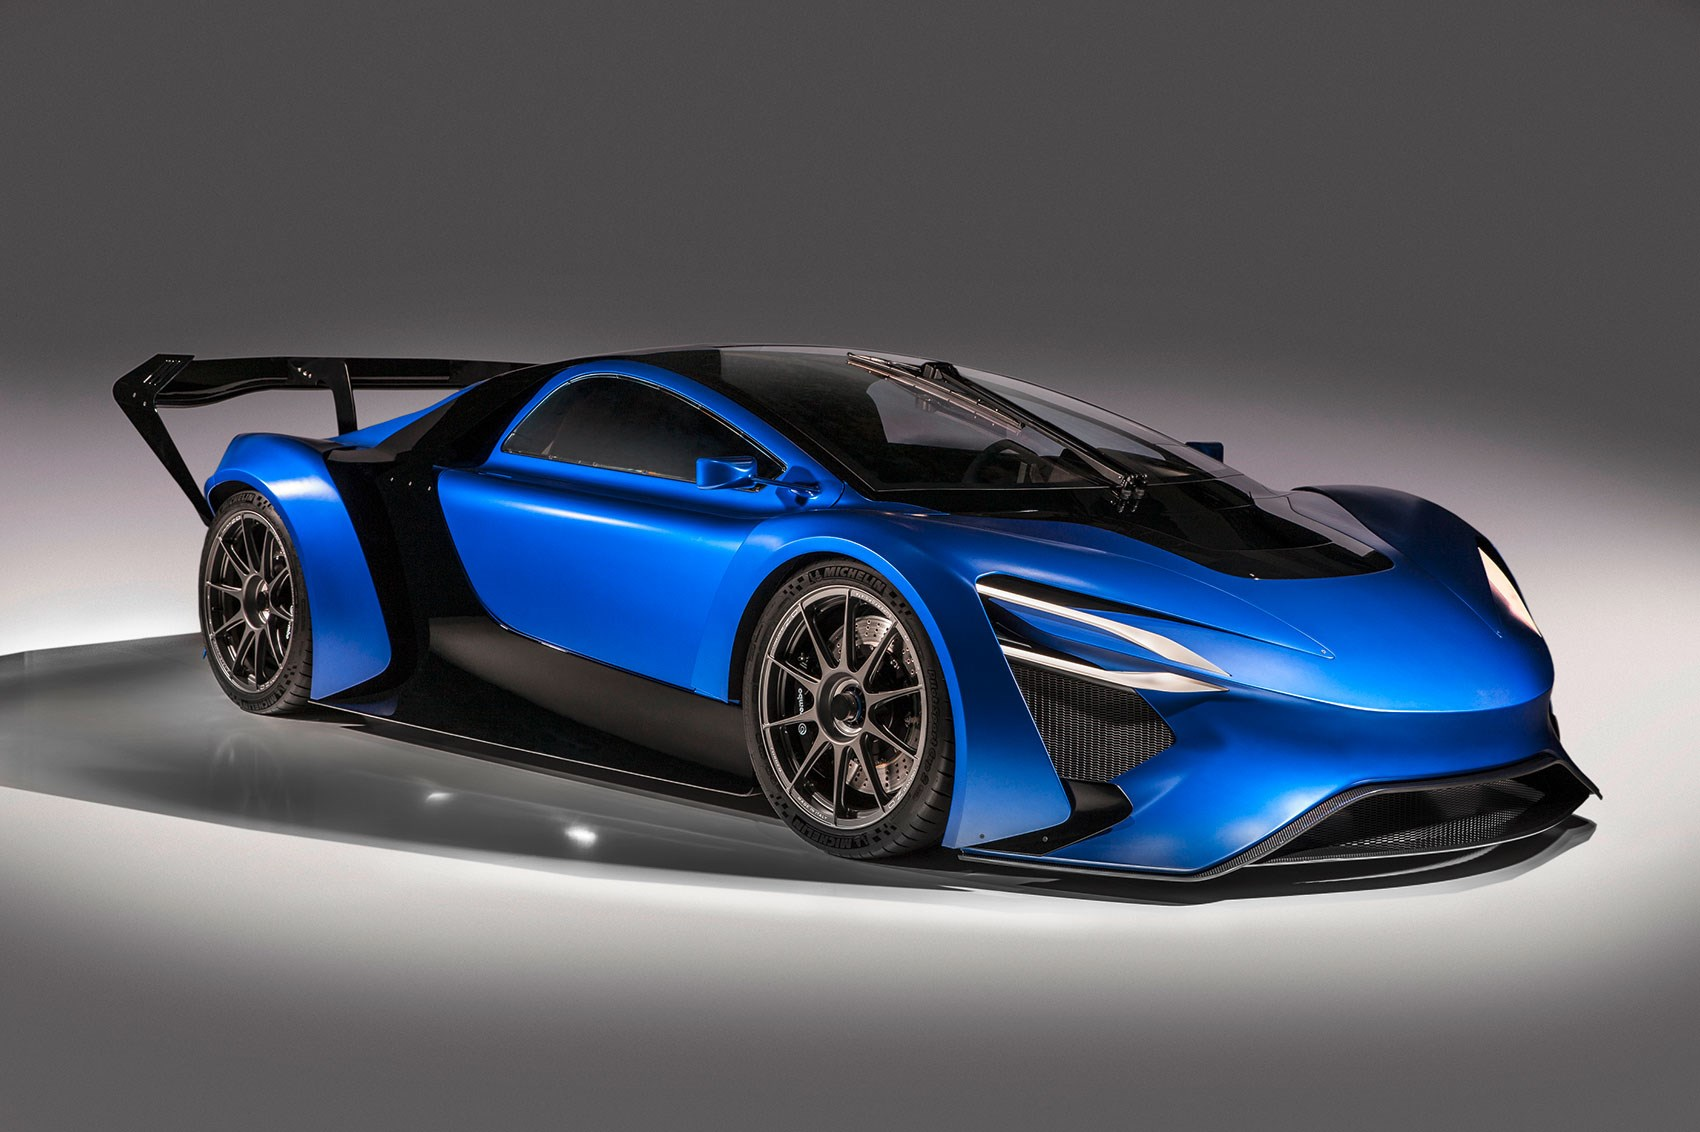 Techrules Tries To Rewrite The Rules: New TREV Supercar